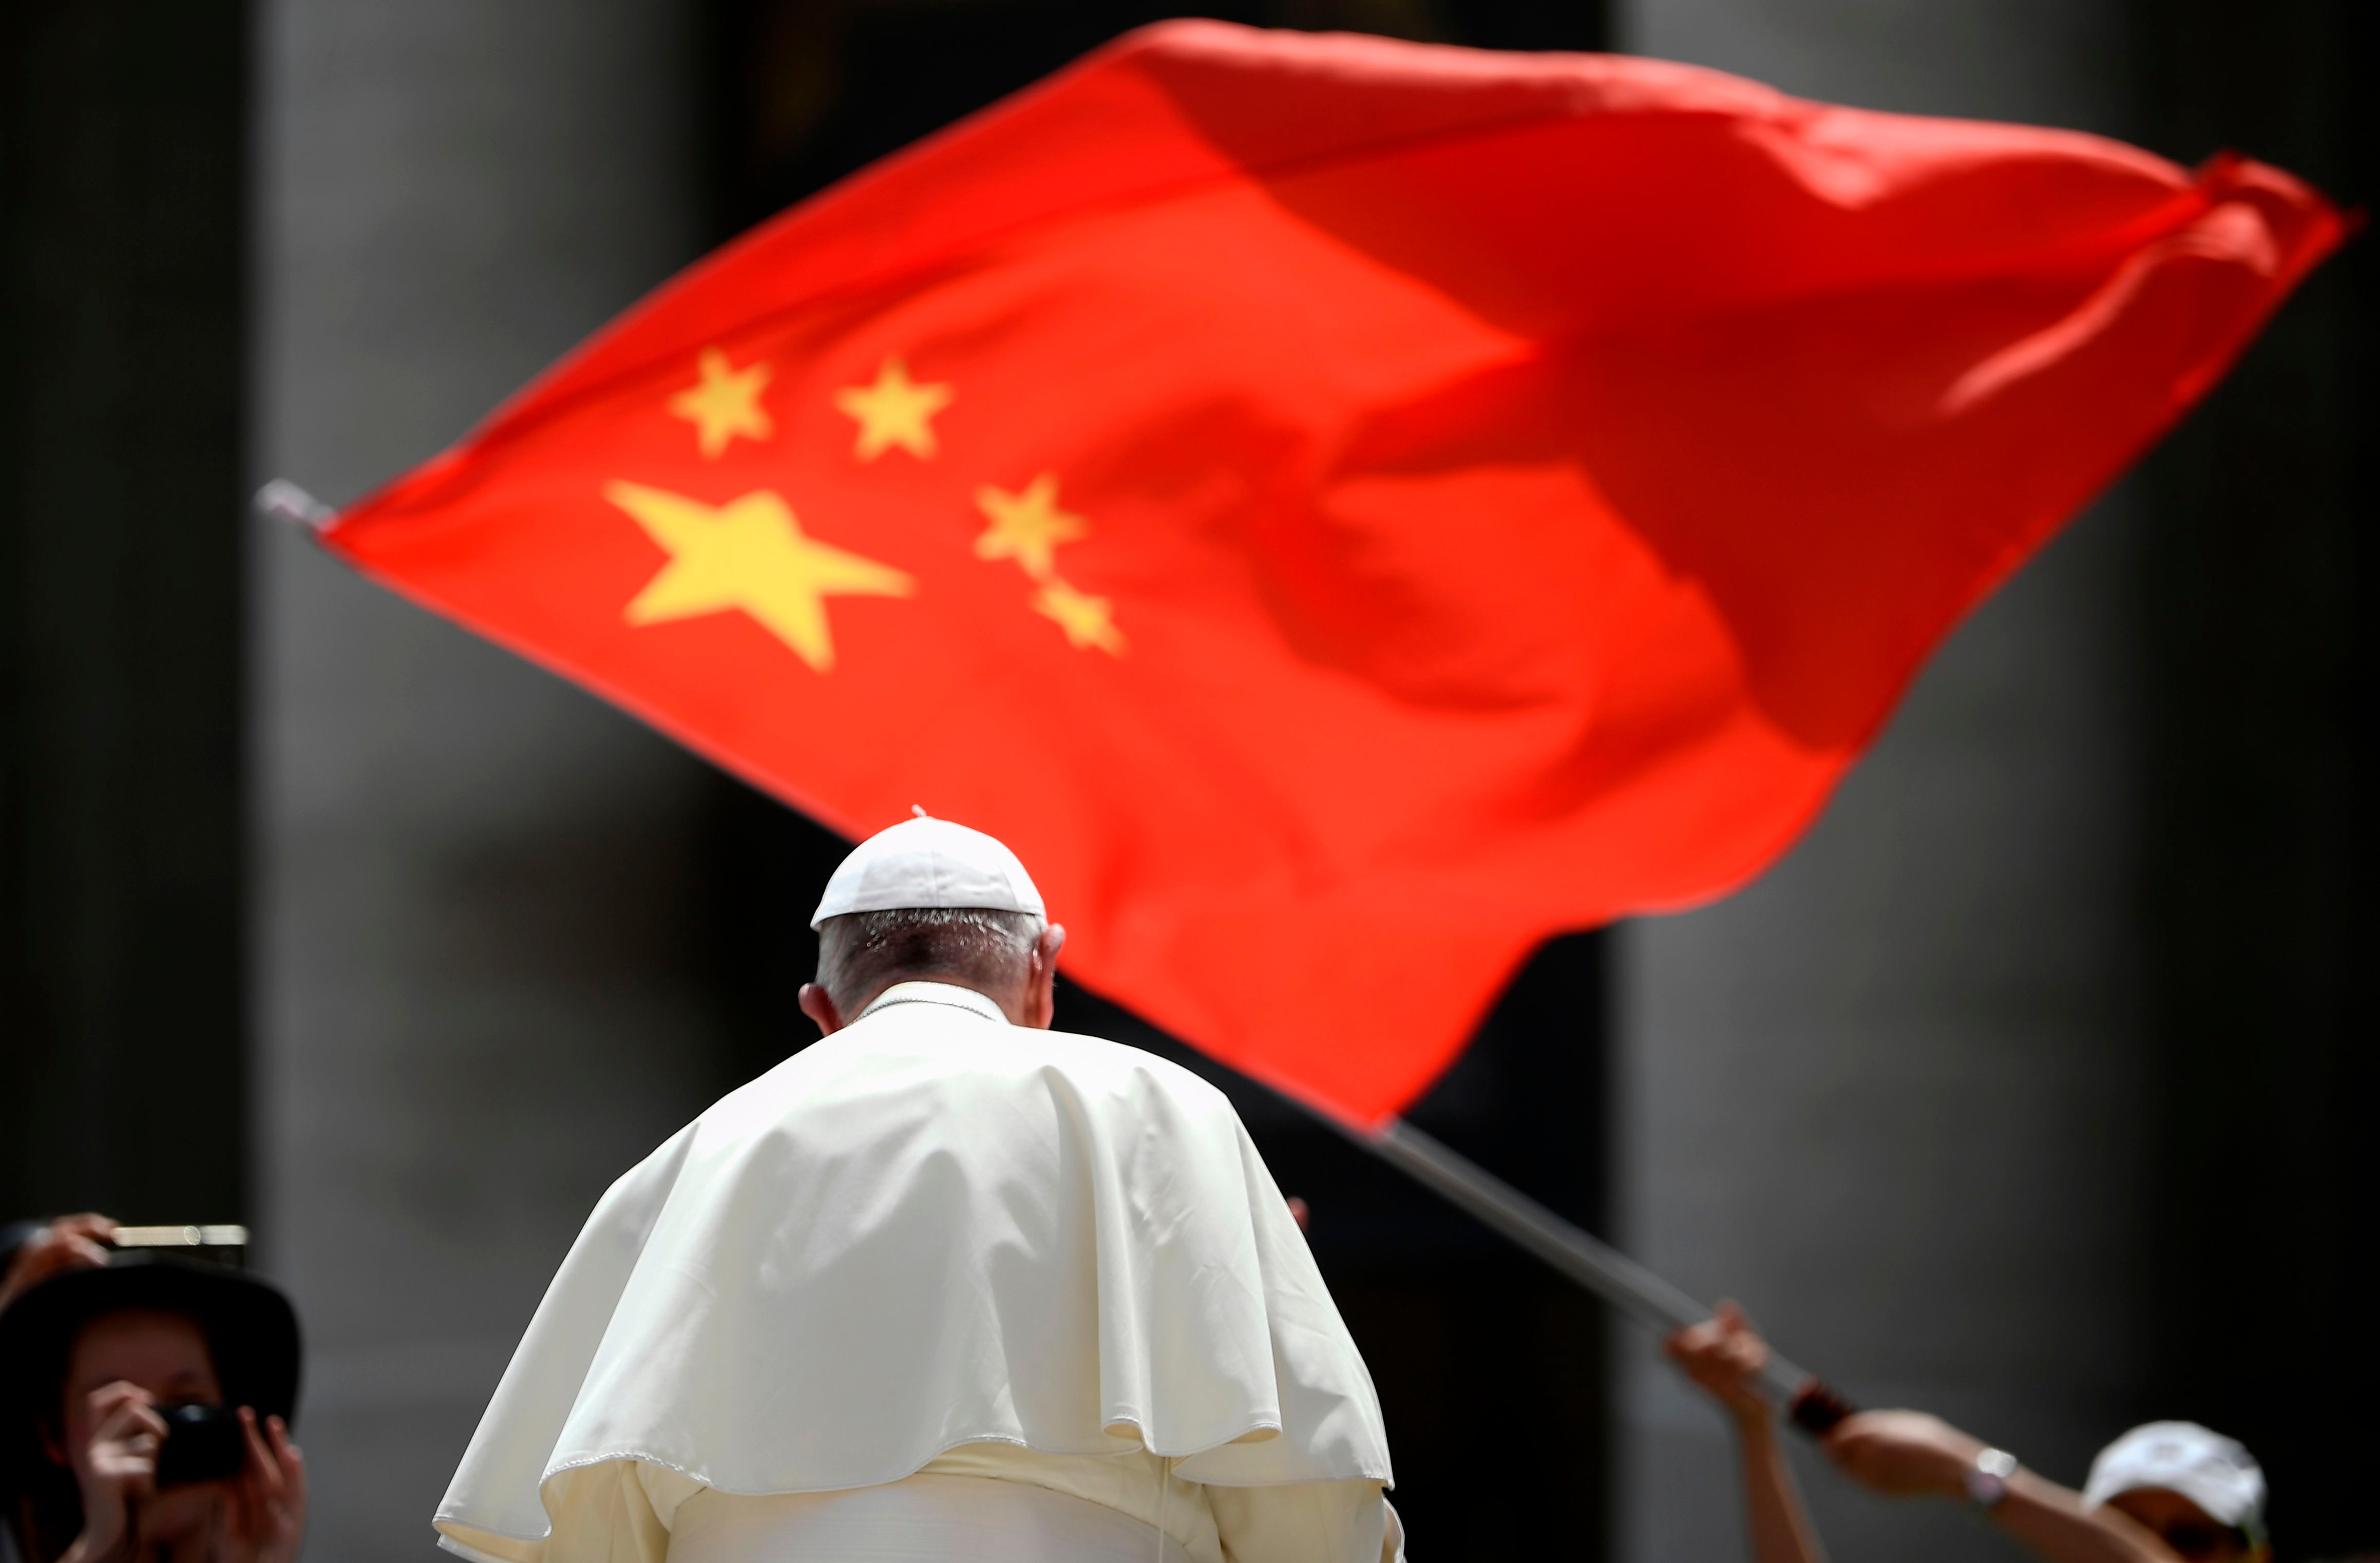 The Vatican's sinister deal with Beijing